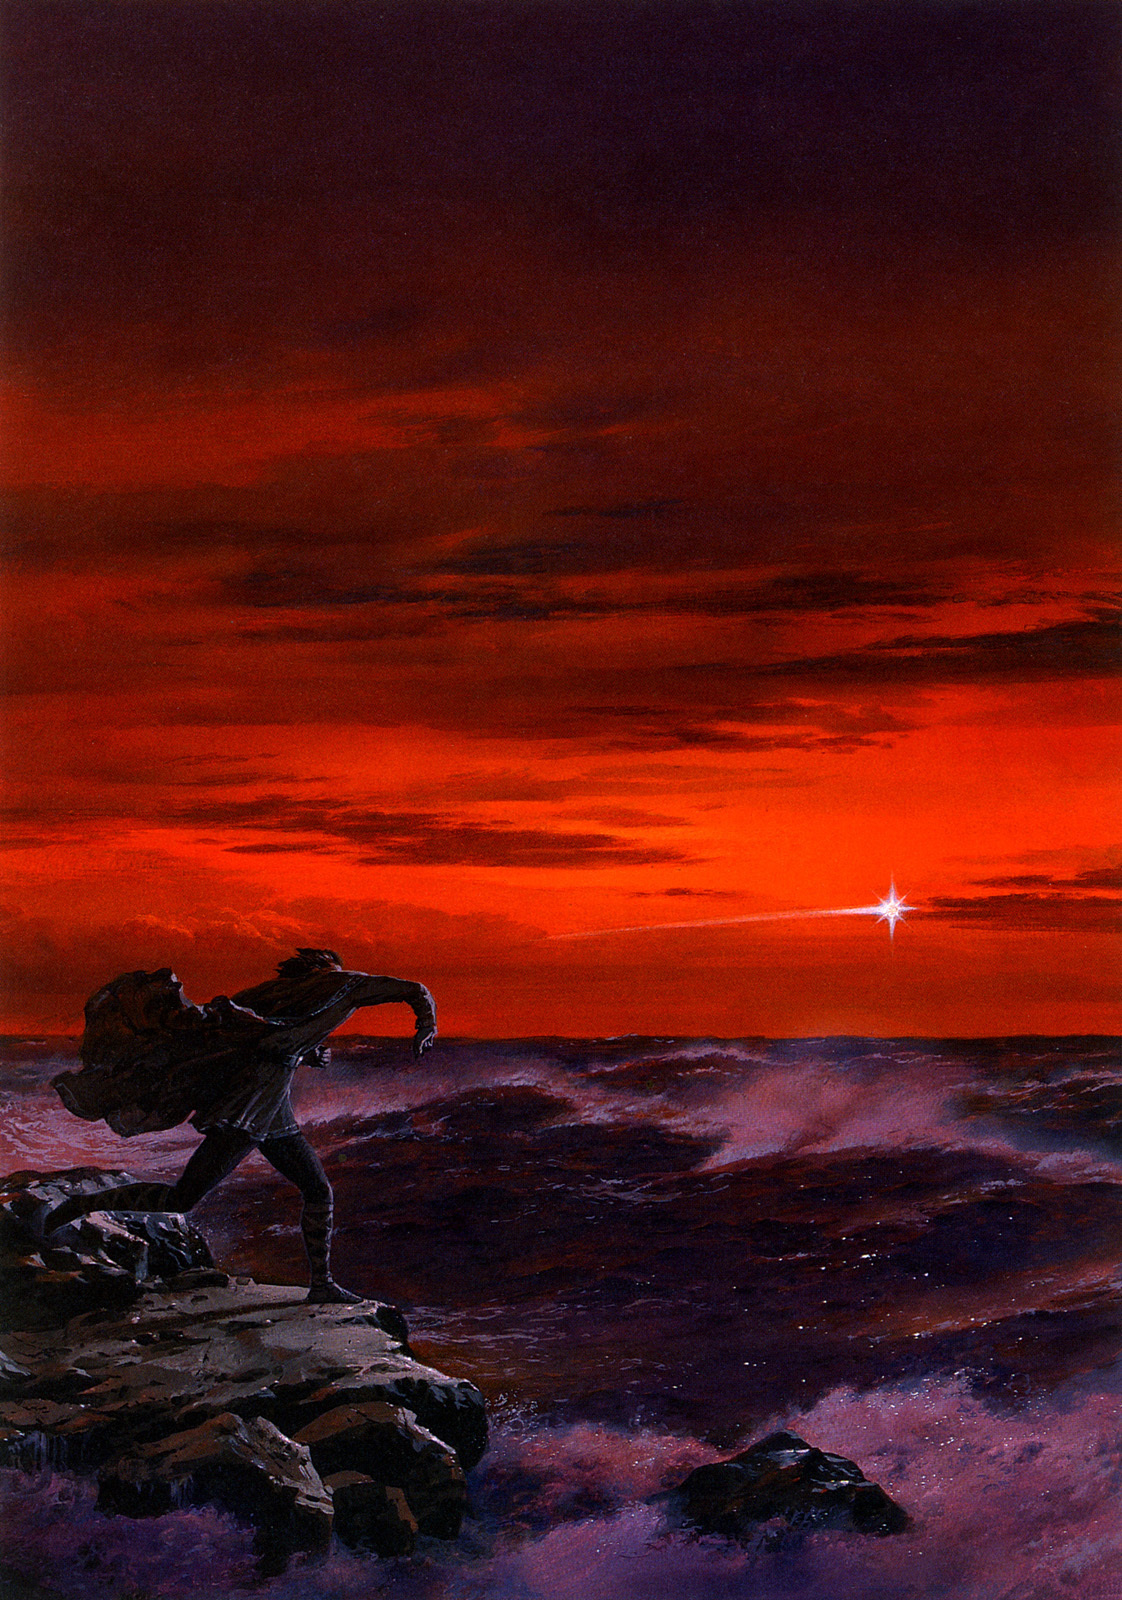 """Maglor casts a Silmaril into the sea"" by Ted Nasmith."